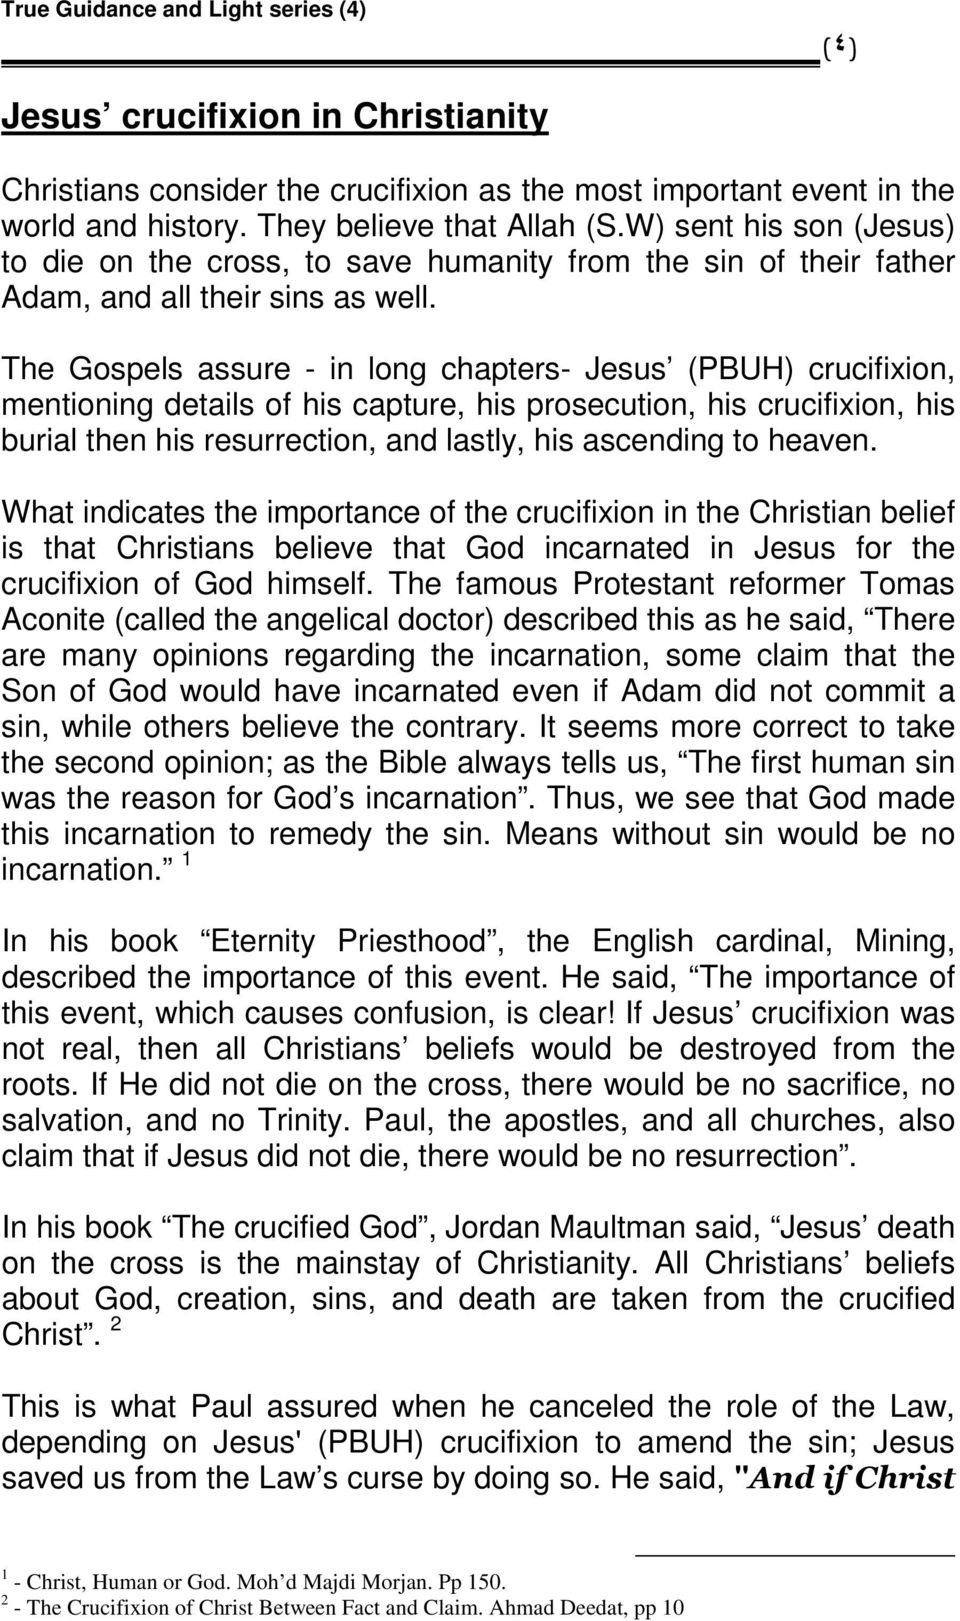 The Gospels assure - in long chapters- Jesus (PBUH) crucifixion, mentioning details of his capture, his prosecution, his crucifixion, his burial then his resurrection, and lastly, his ascending to